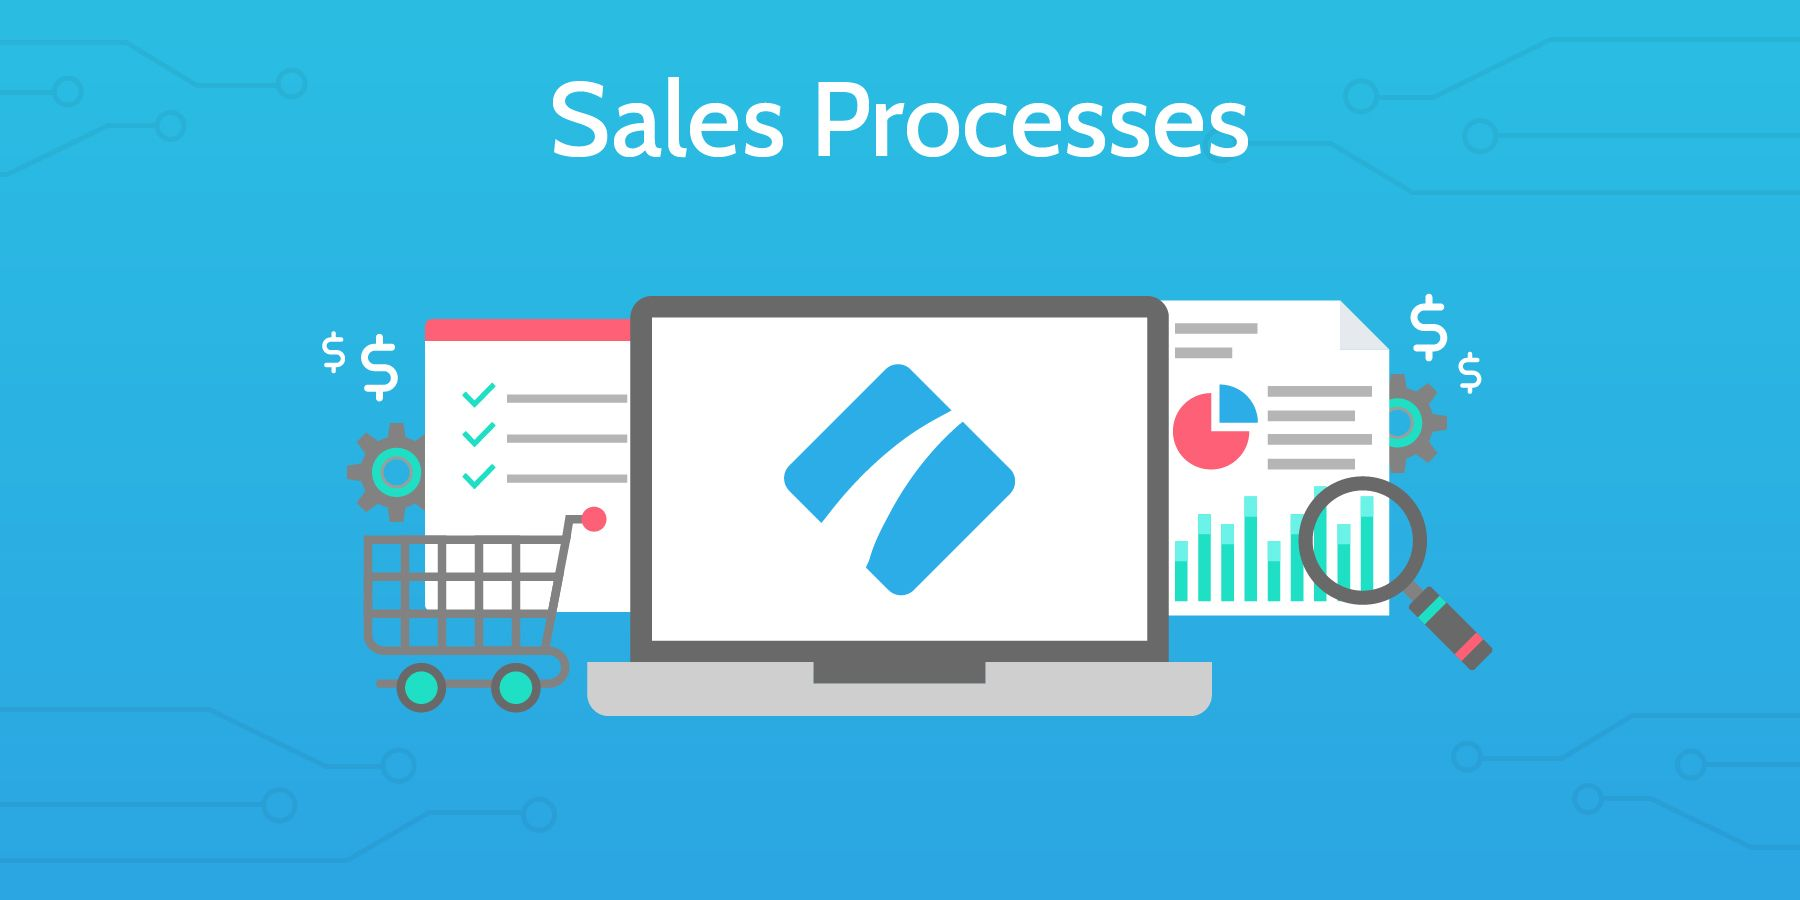 Sales Processes From Prospecting To Closing   Sales Process